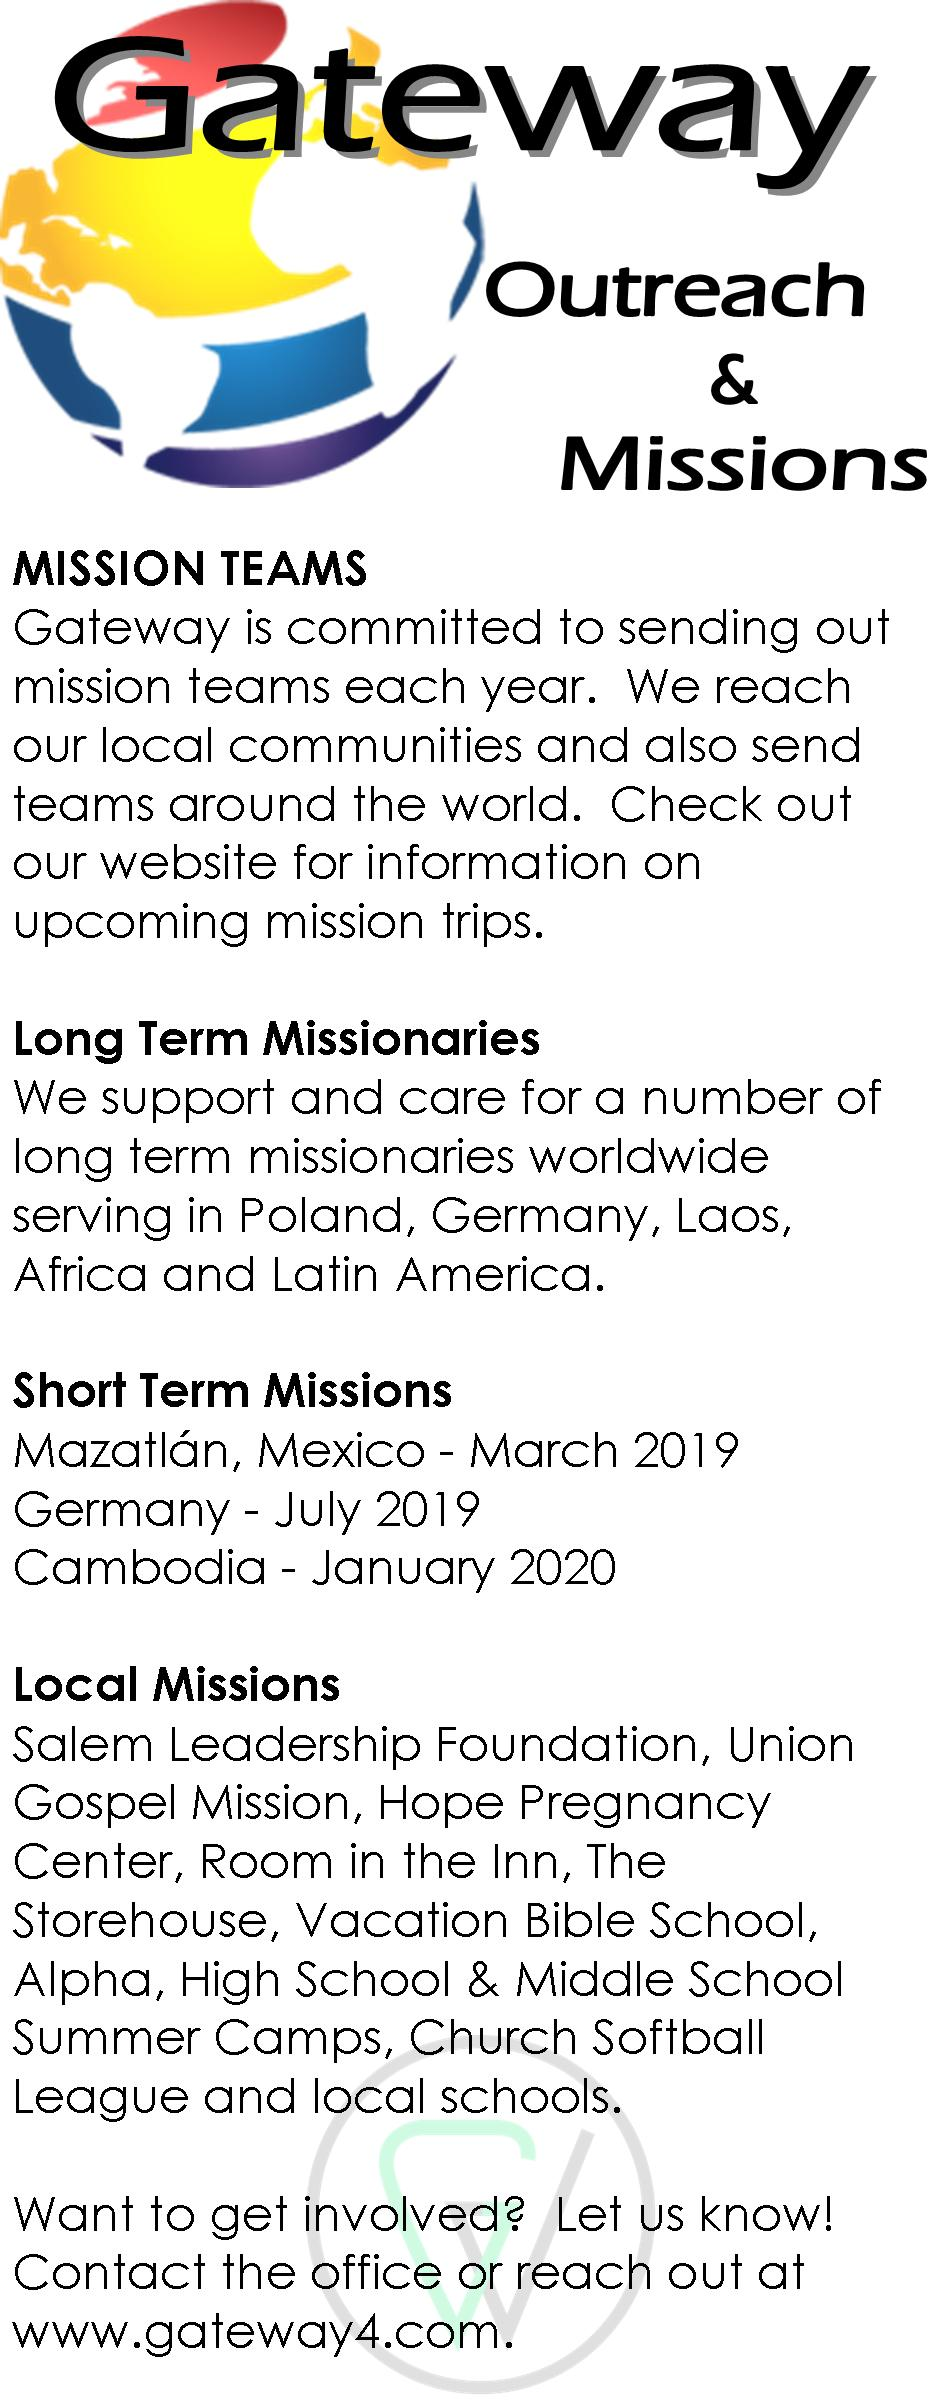 Gateway Outreach and Missions 2018.jpg